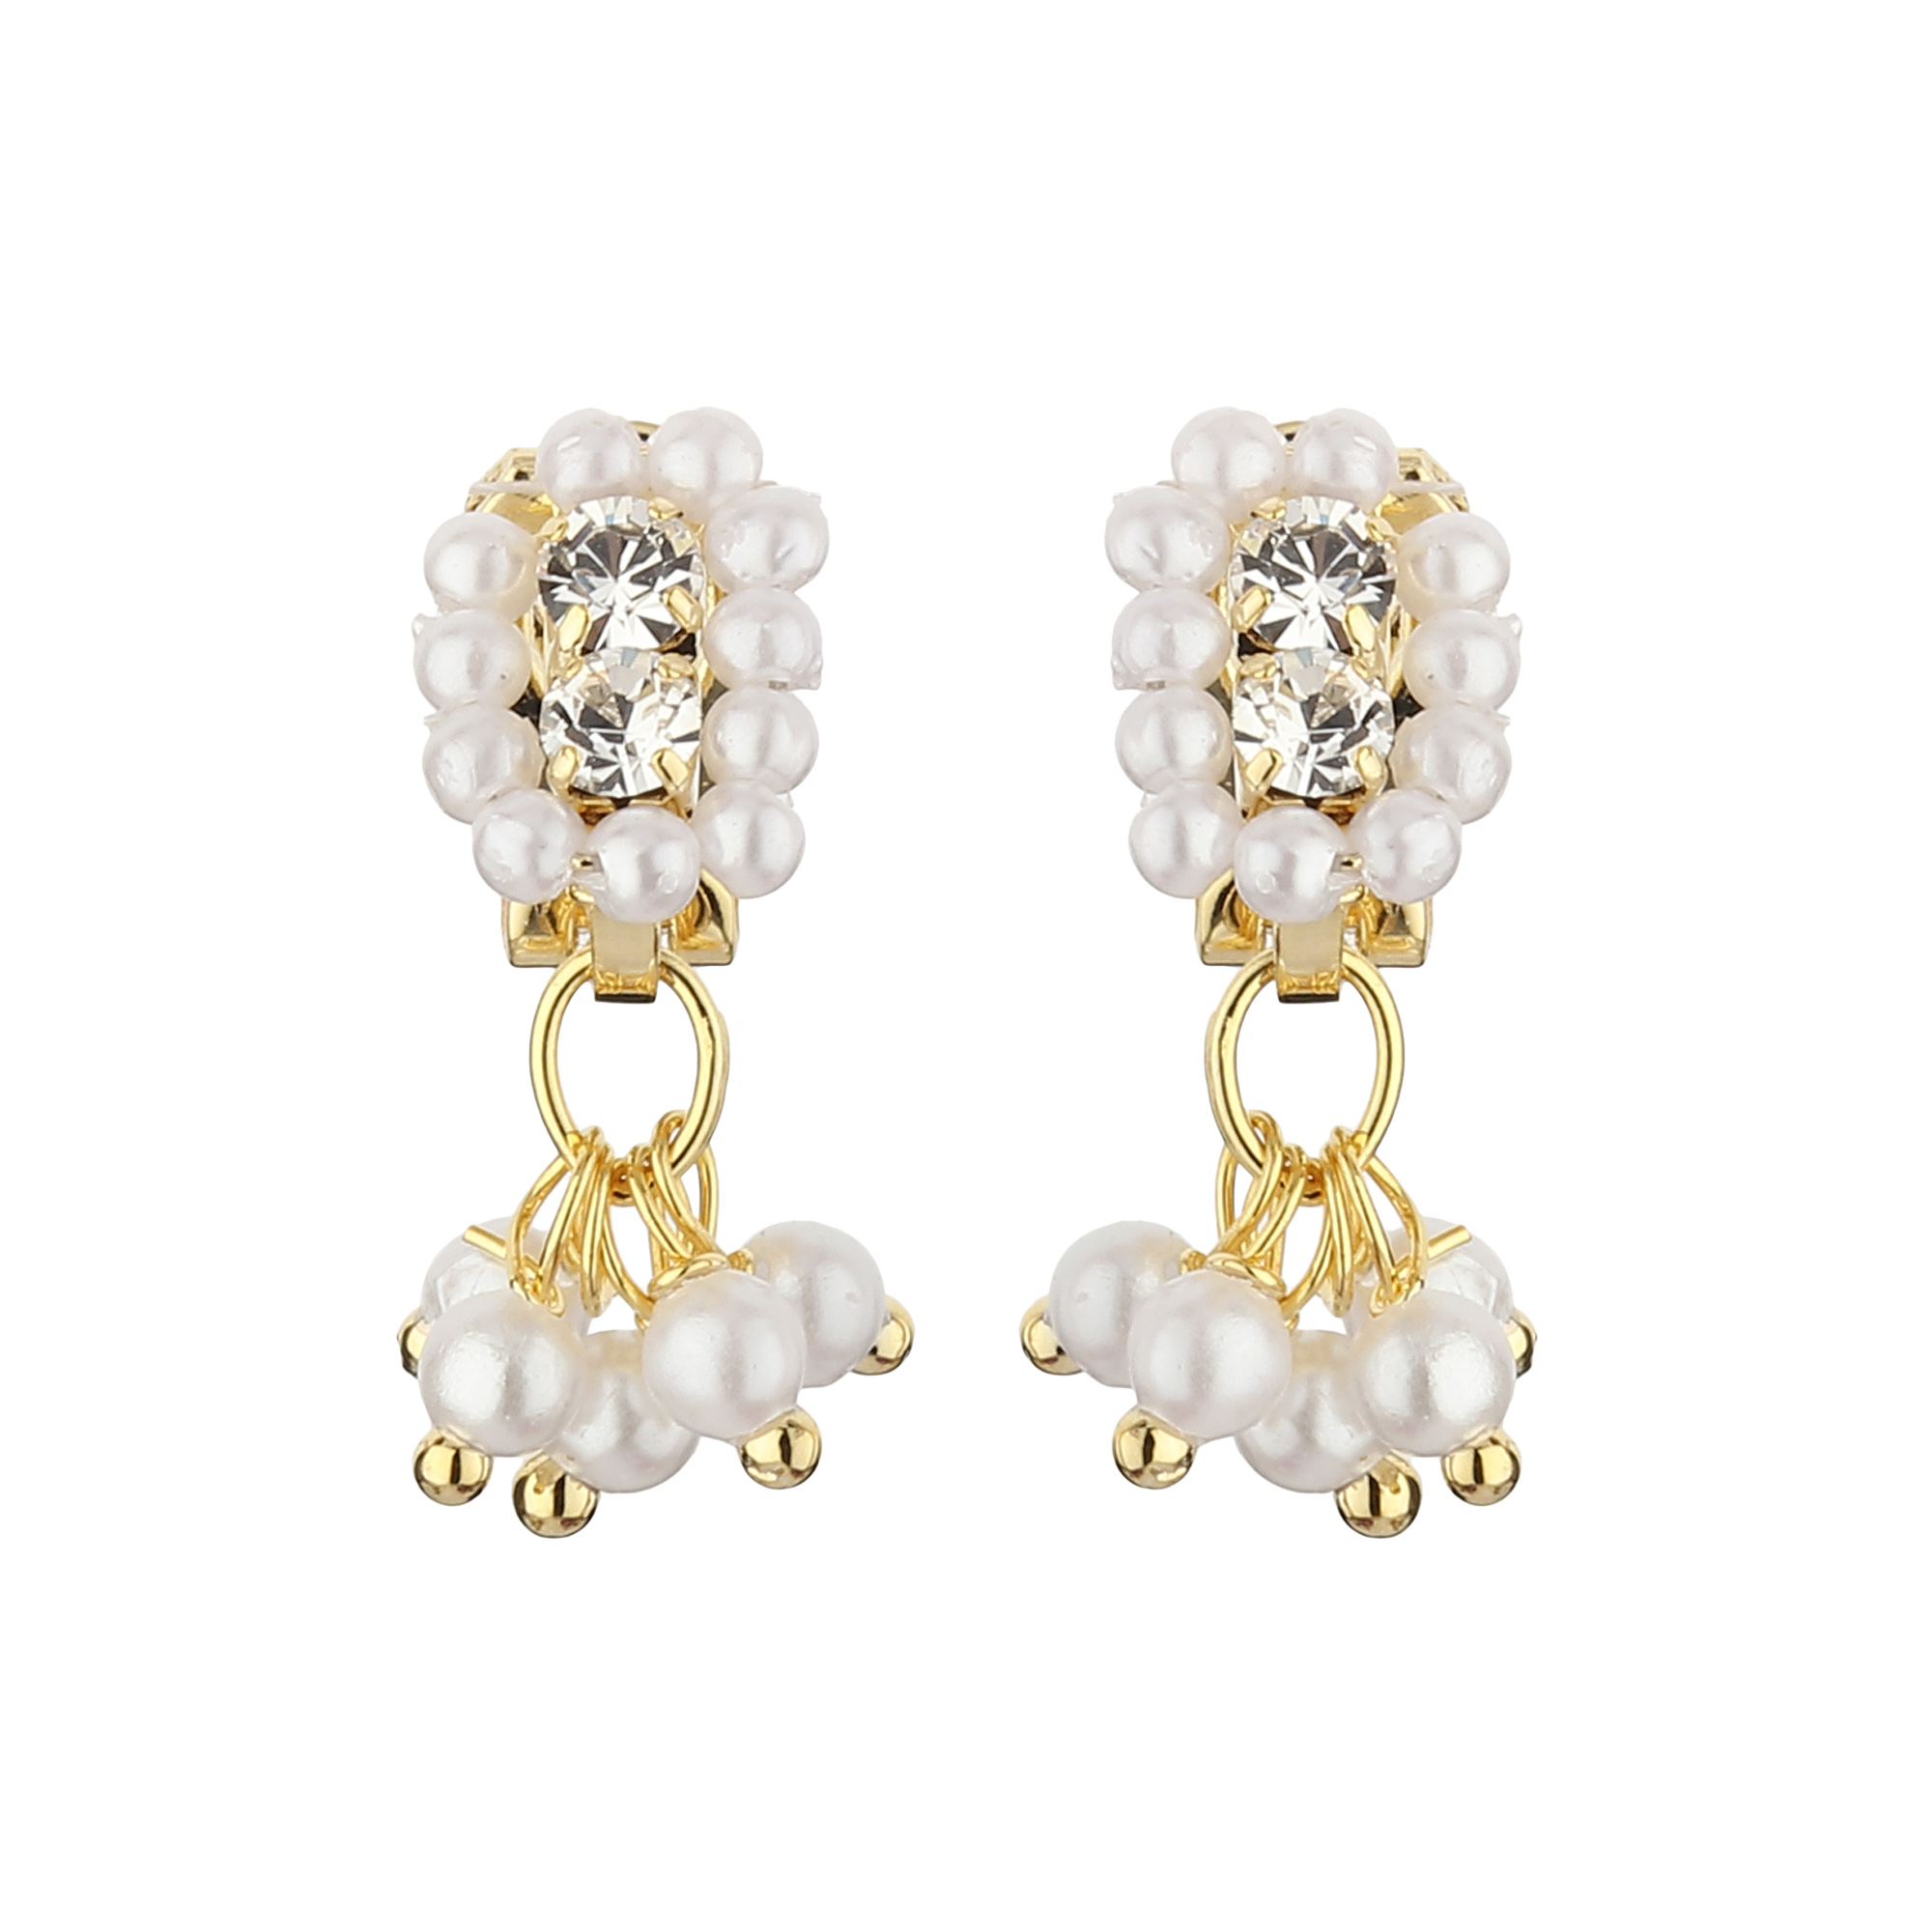 FirstBlush Clip On Earrings for Non Piearced Ears for Women & Girls; Plating: Gold; Color: White; Size: 20 X 8mm; Wt.: 2gm. (MIEC104M112)